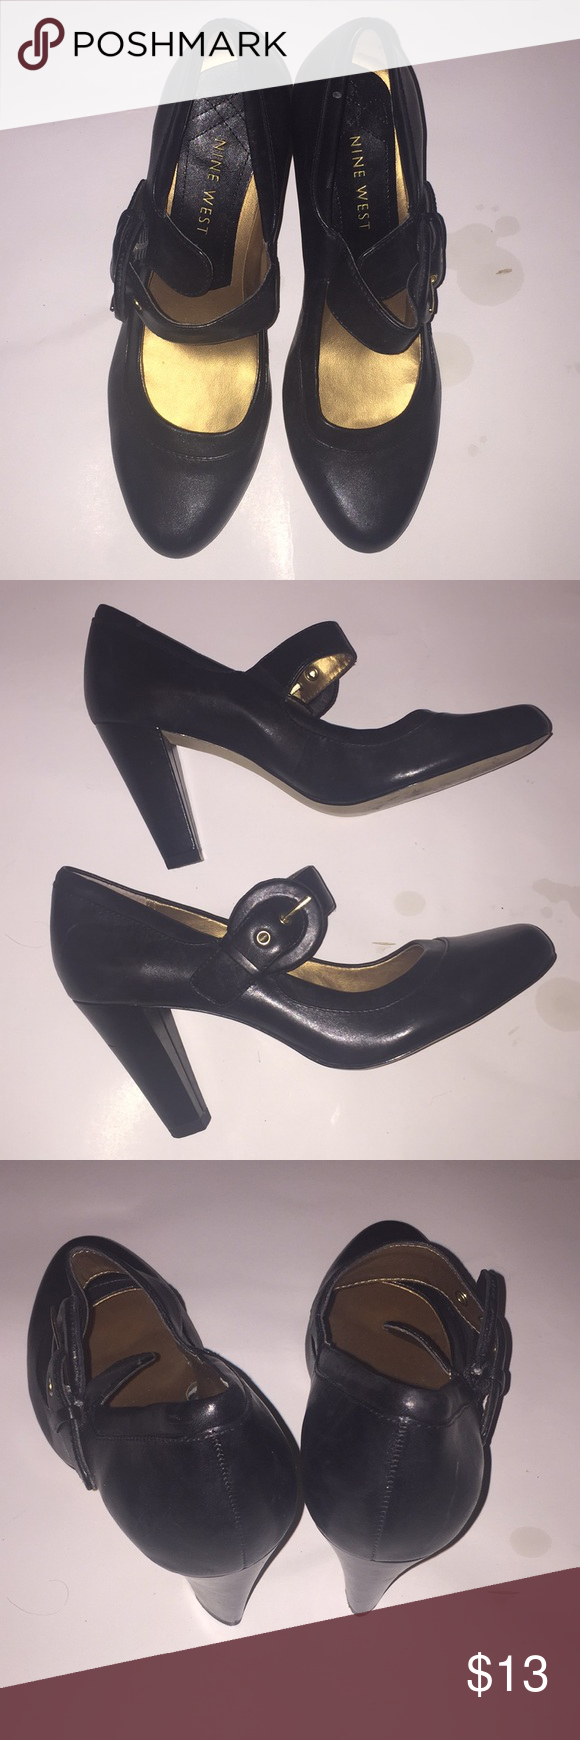 c37bef9624fe Nine West Shoes - Size 61 2 Genuine leather. Very good condition. 3